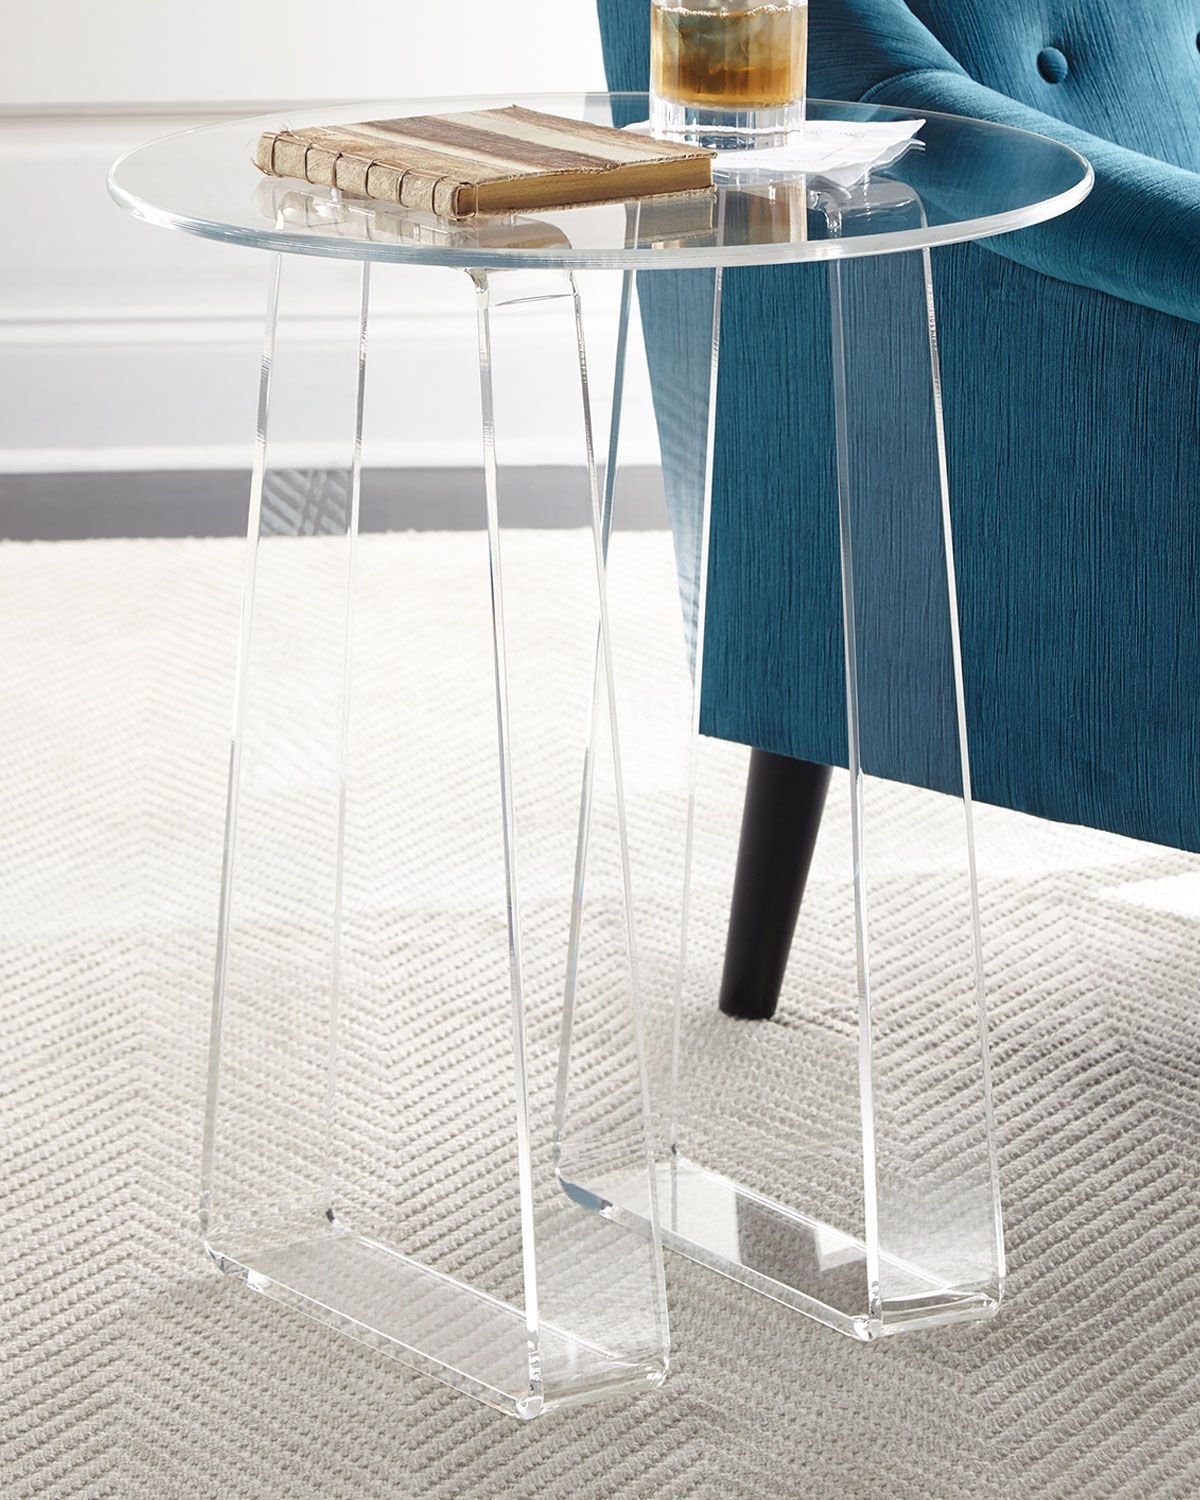 Handcrafted Side Table Clear Acrylic 20 Dia X 24 T Embly Required Imported Boxed Weight Roximately 21 Lbs